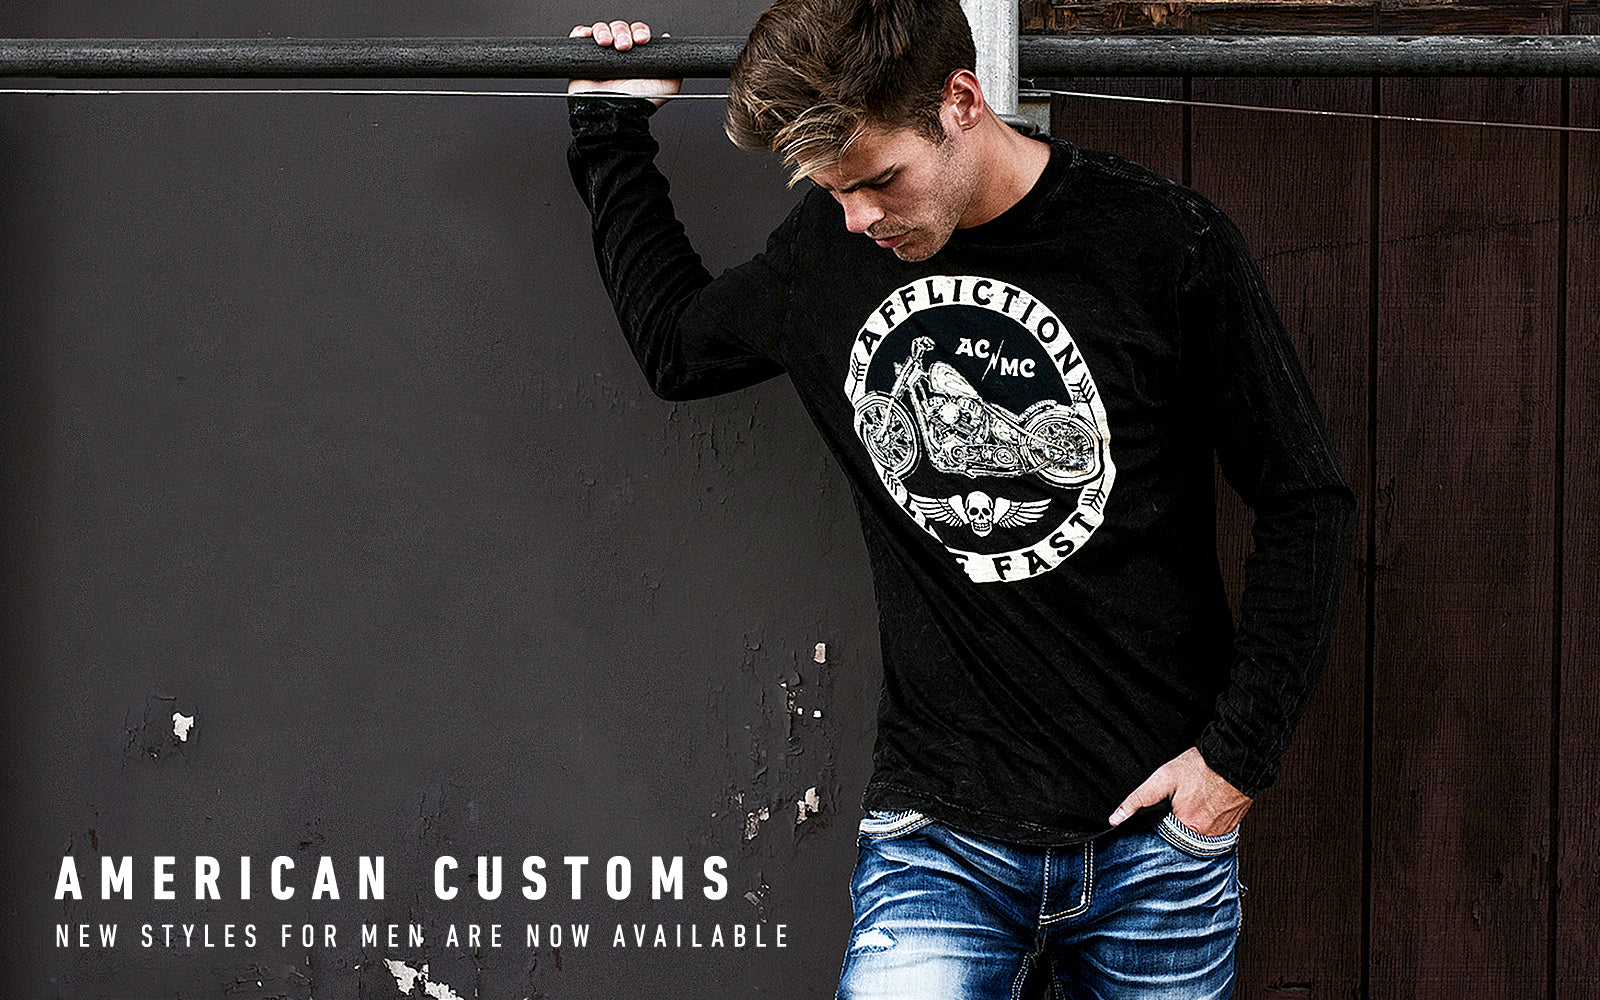 american customs new styles for men are now available